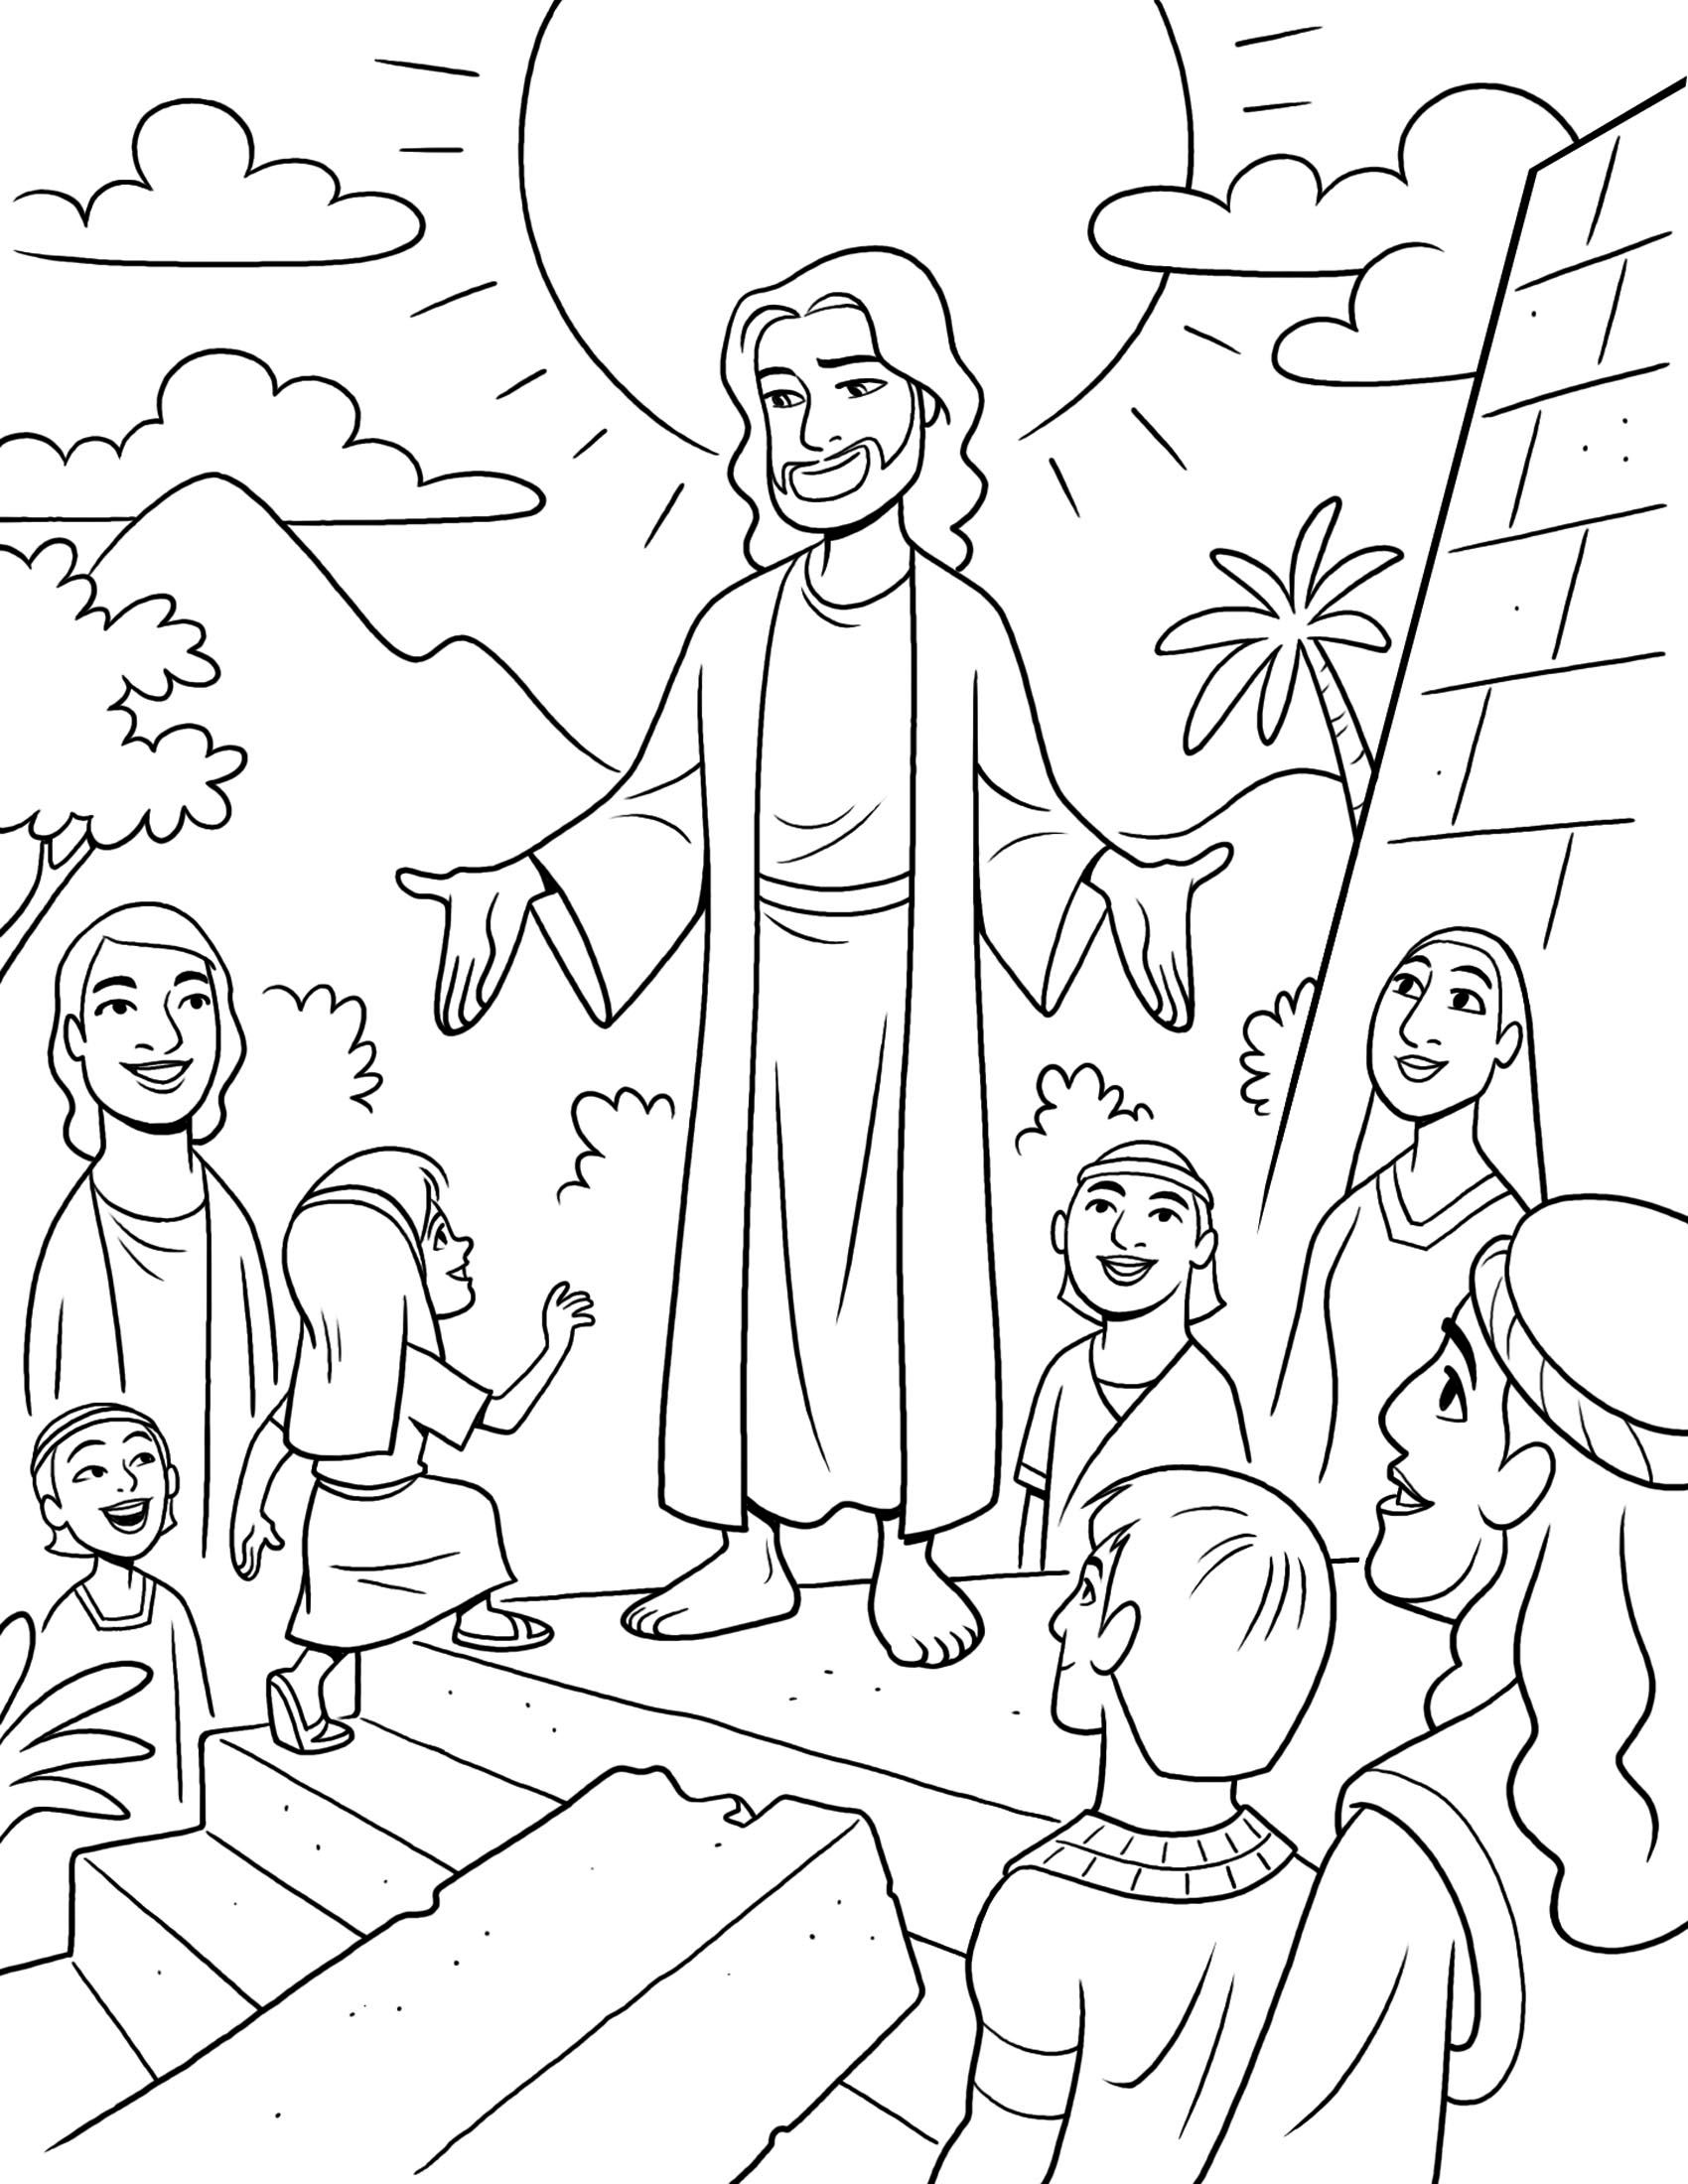 Book of Mormon stories. This is a fun coloring page of